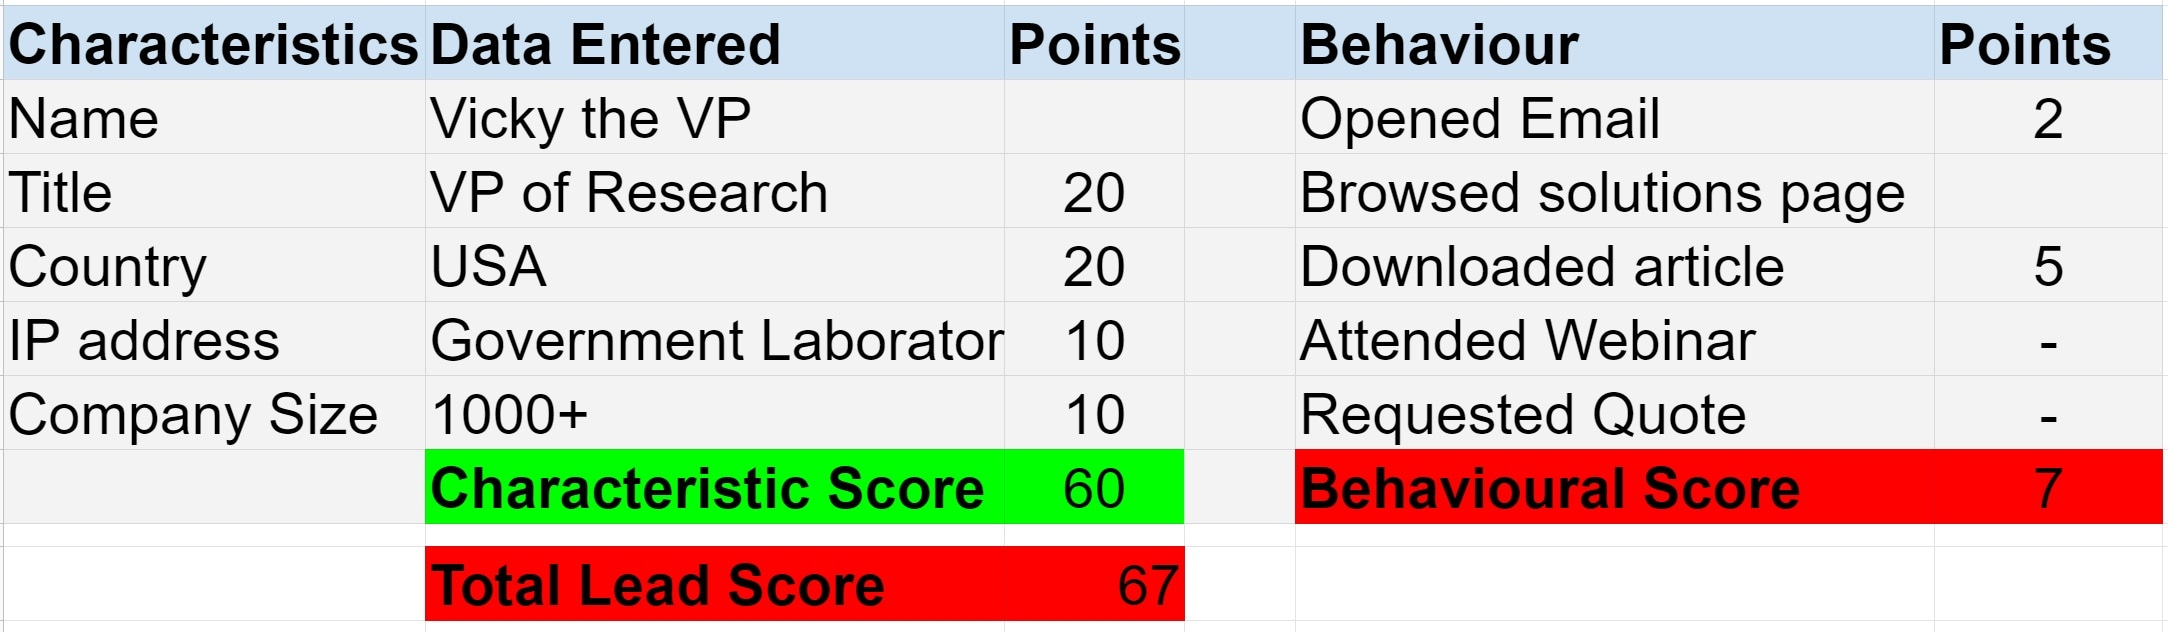 Lead Scoring - Vicky the VP